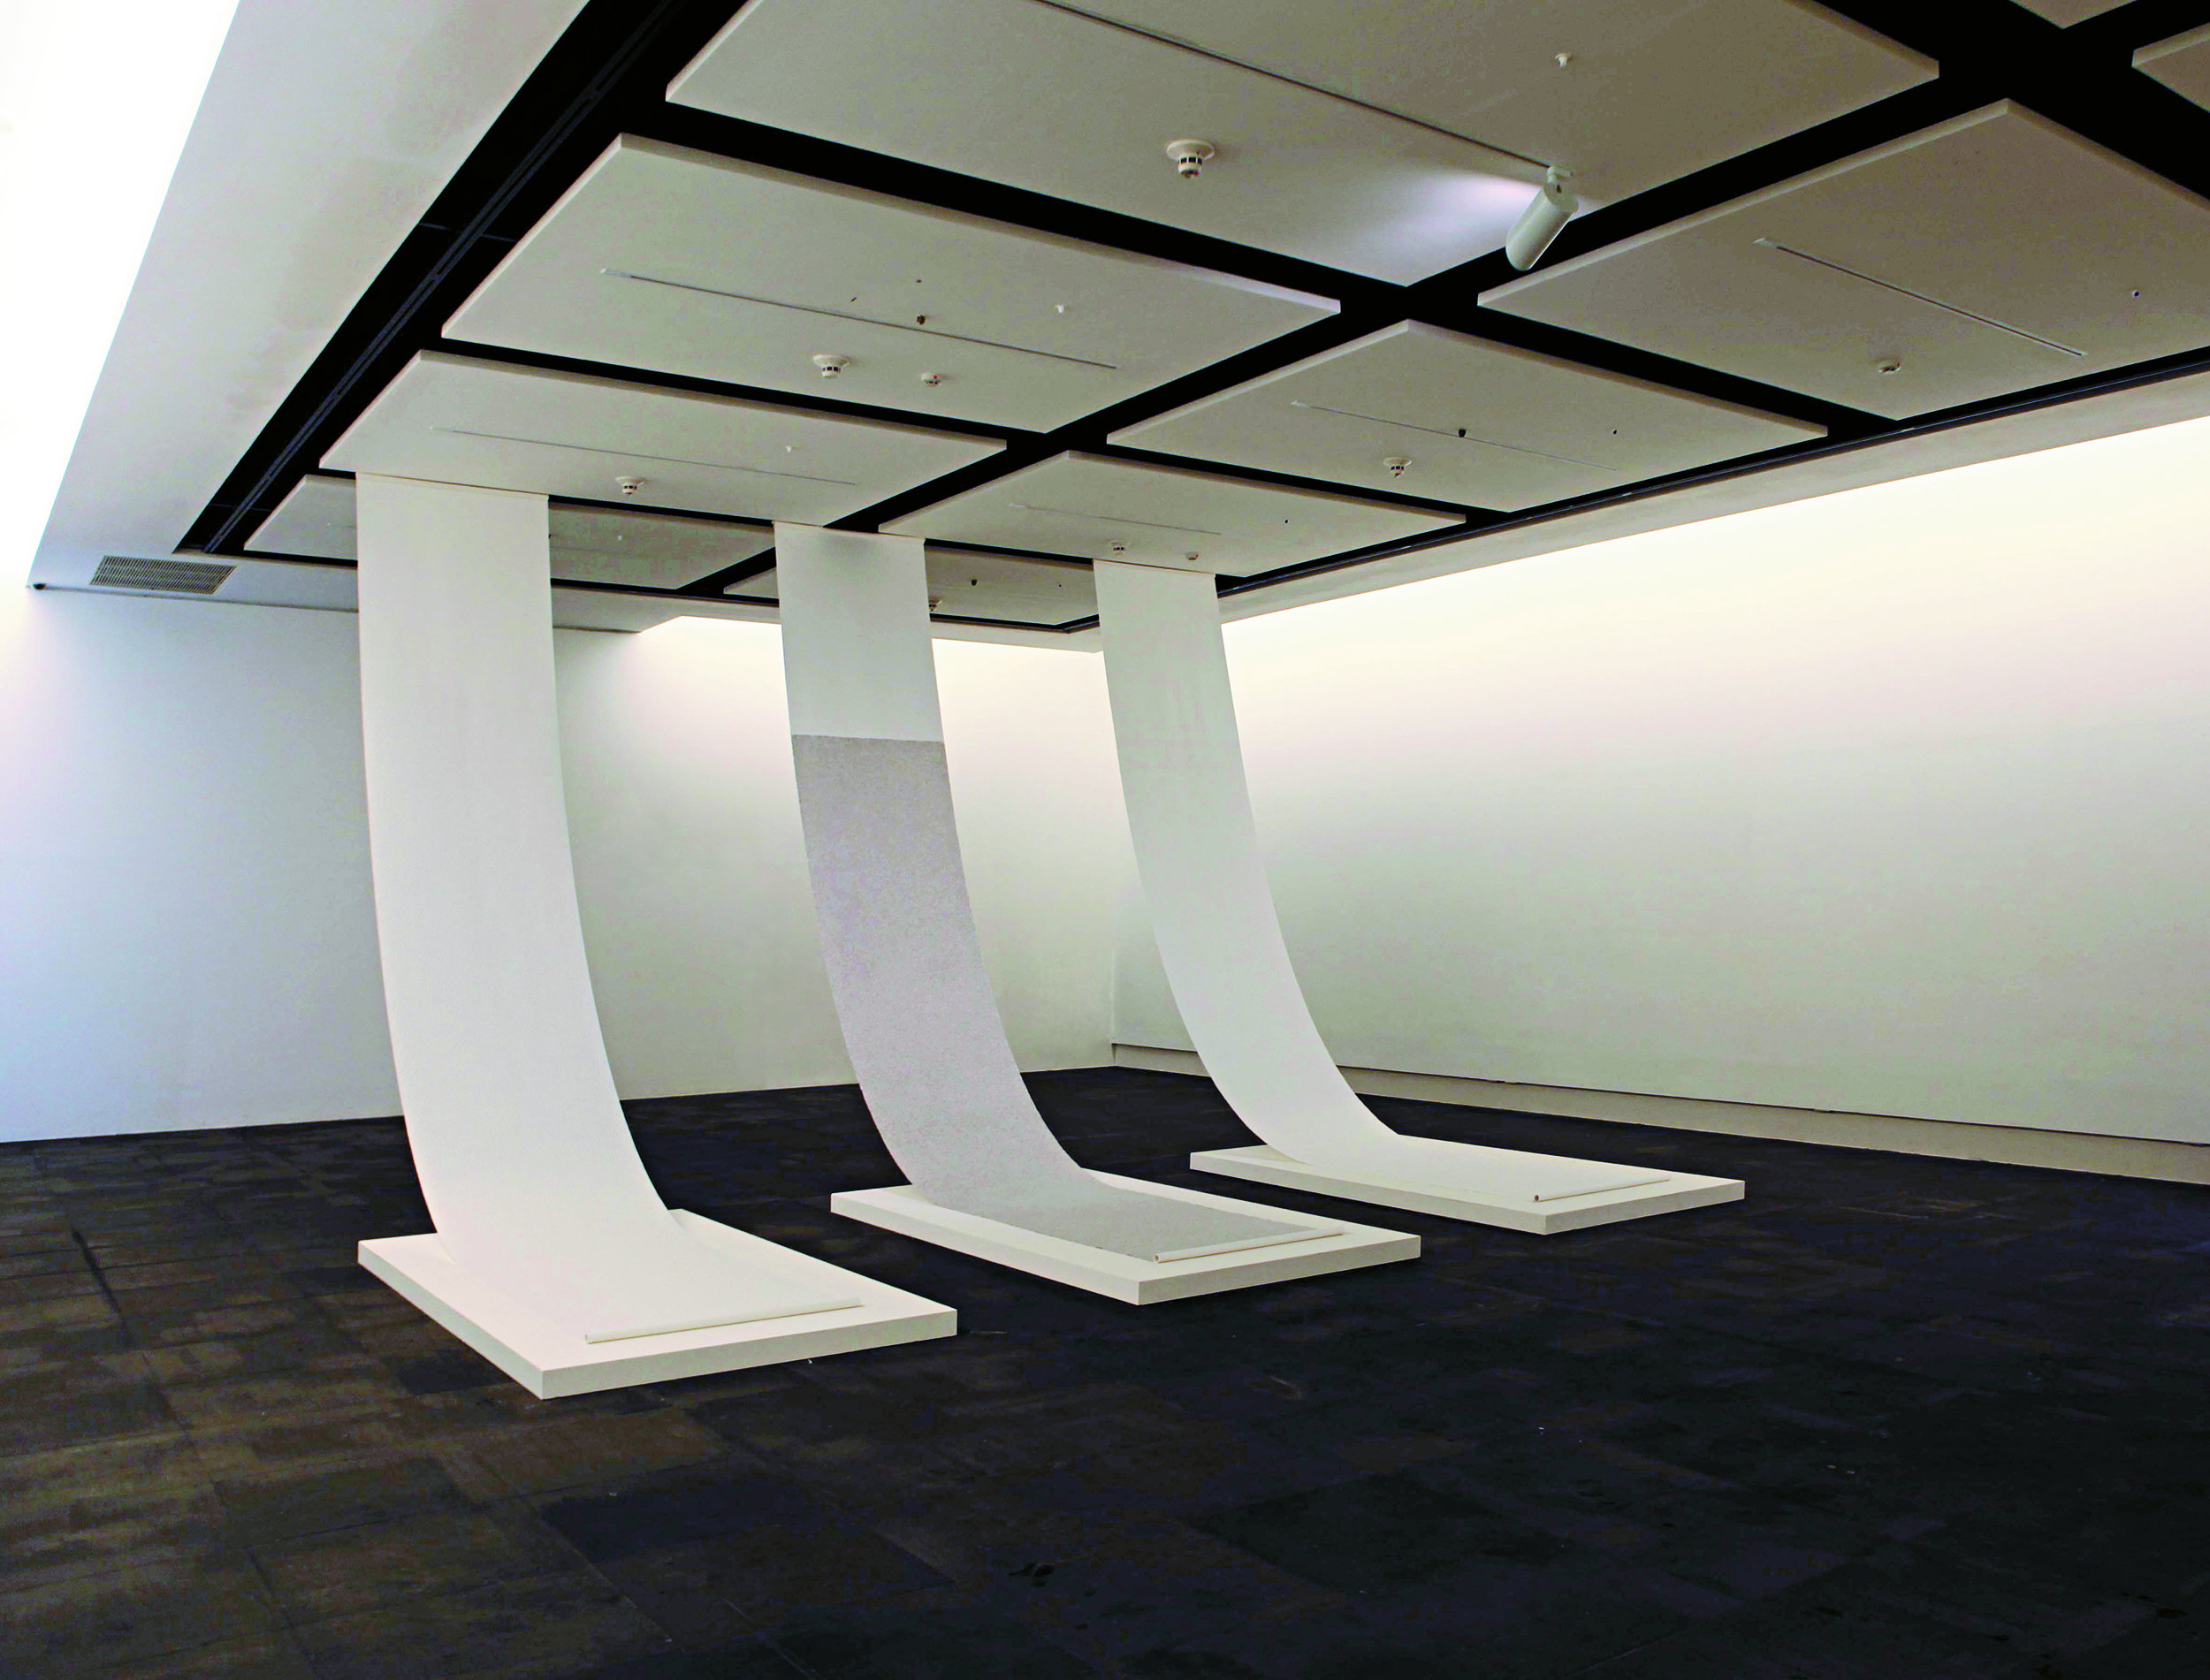 Zhang Yu, Fingerprints, 2008. Installation view, Kandu Museum of Fine Arts, Tapei, 2009. Courtesy of the artist.